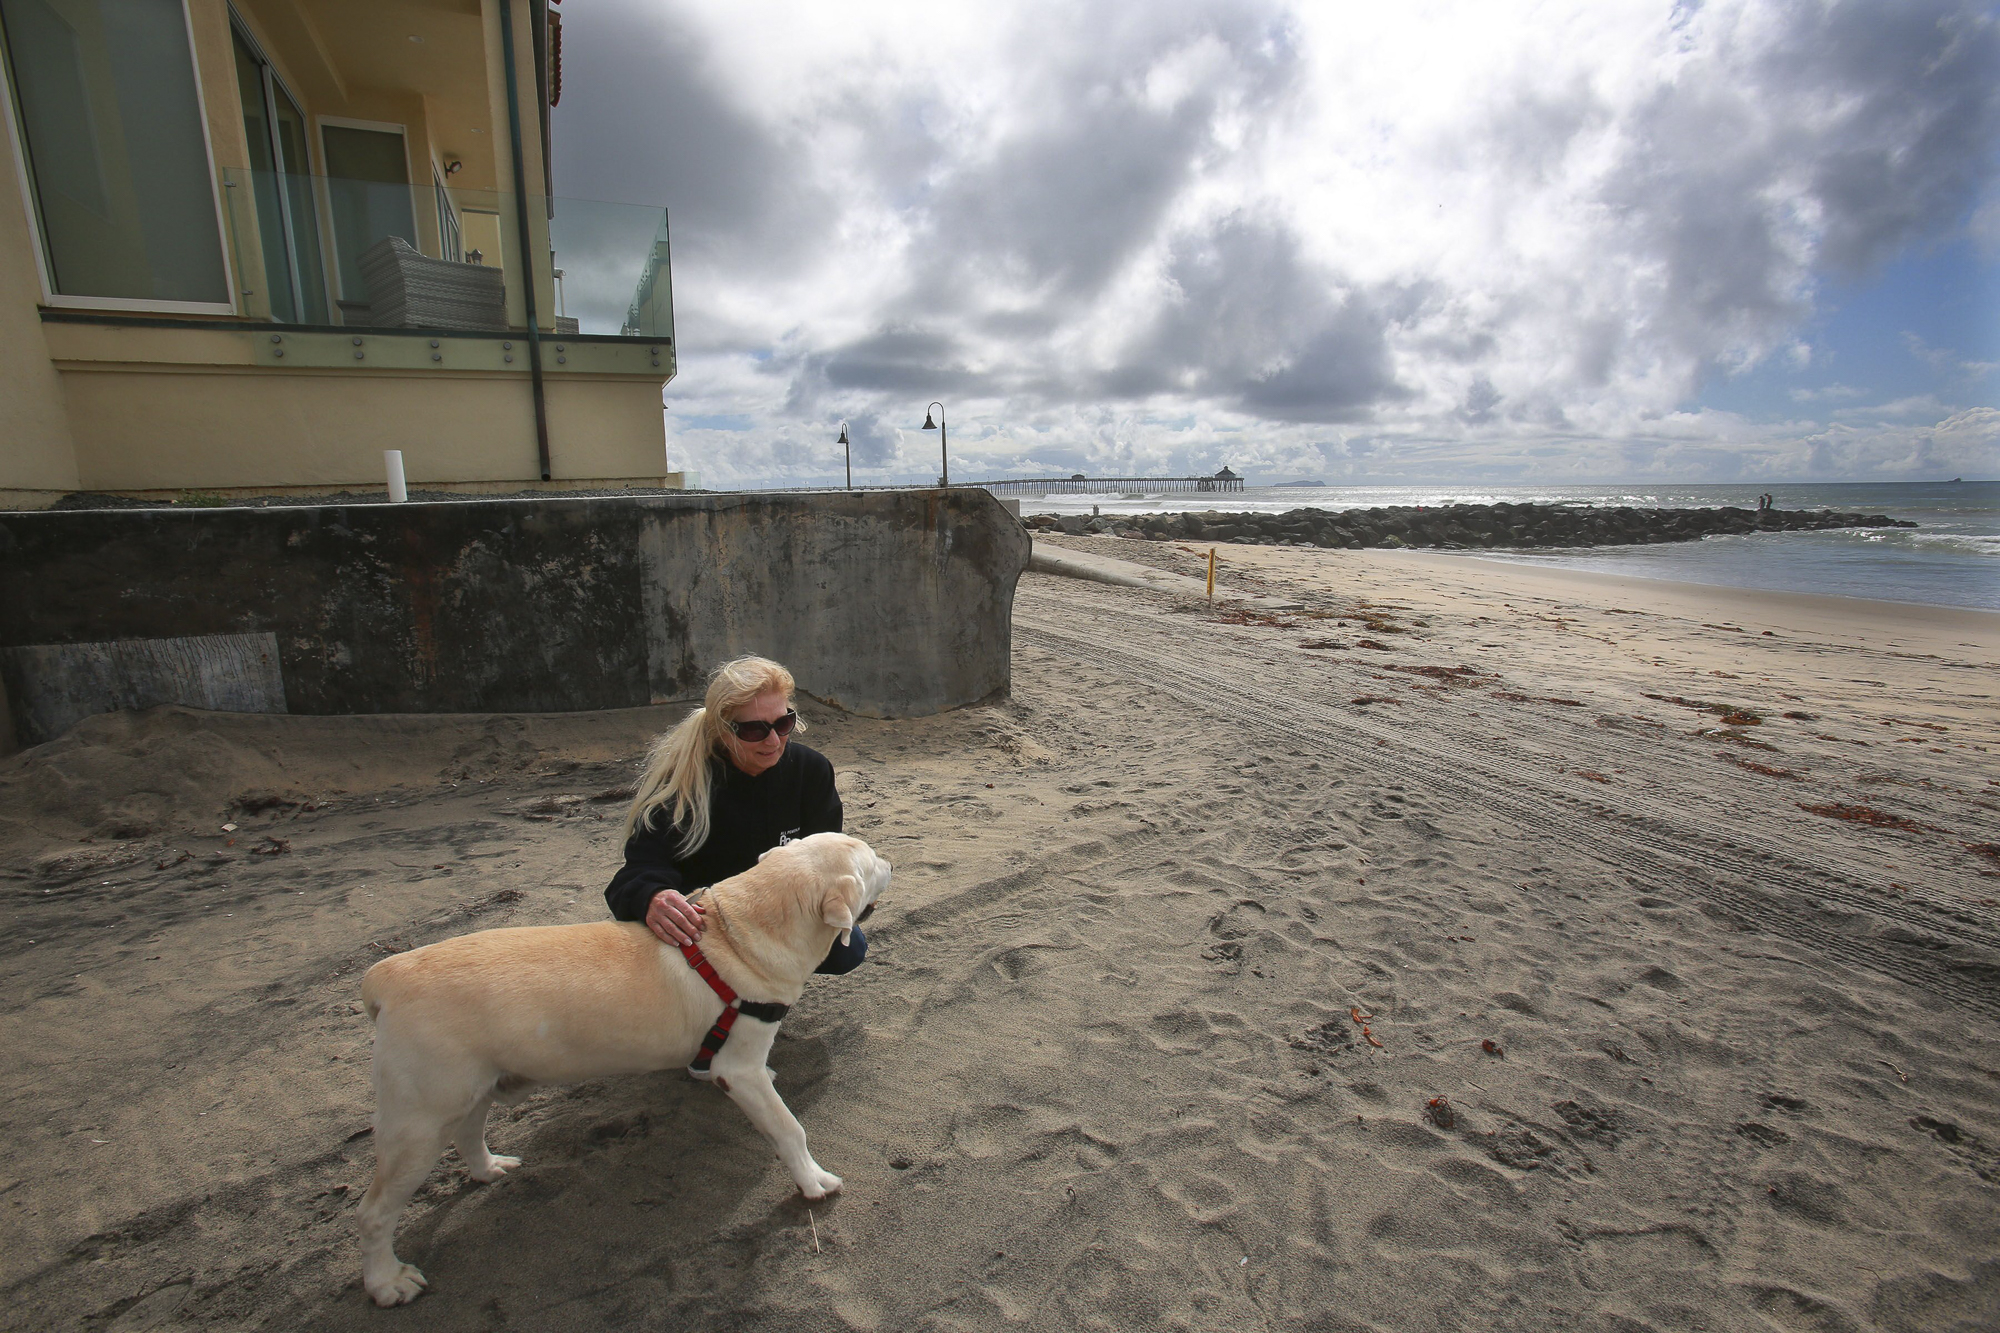 Imperial Beach resident Brenda Clark on the sand with her dog Cooper, March 2020. Photo by Peggy Peattie for CalMatters